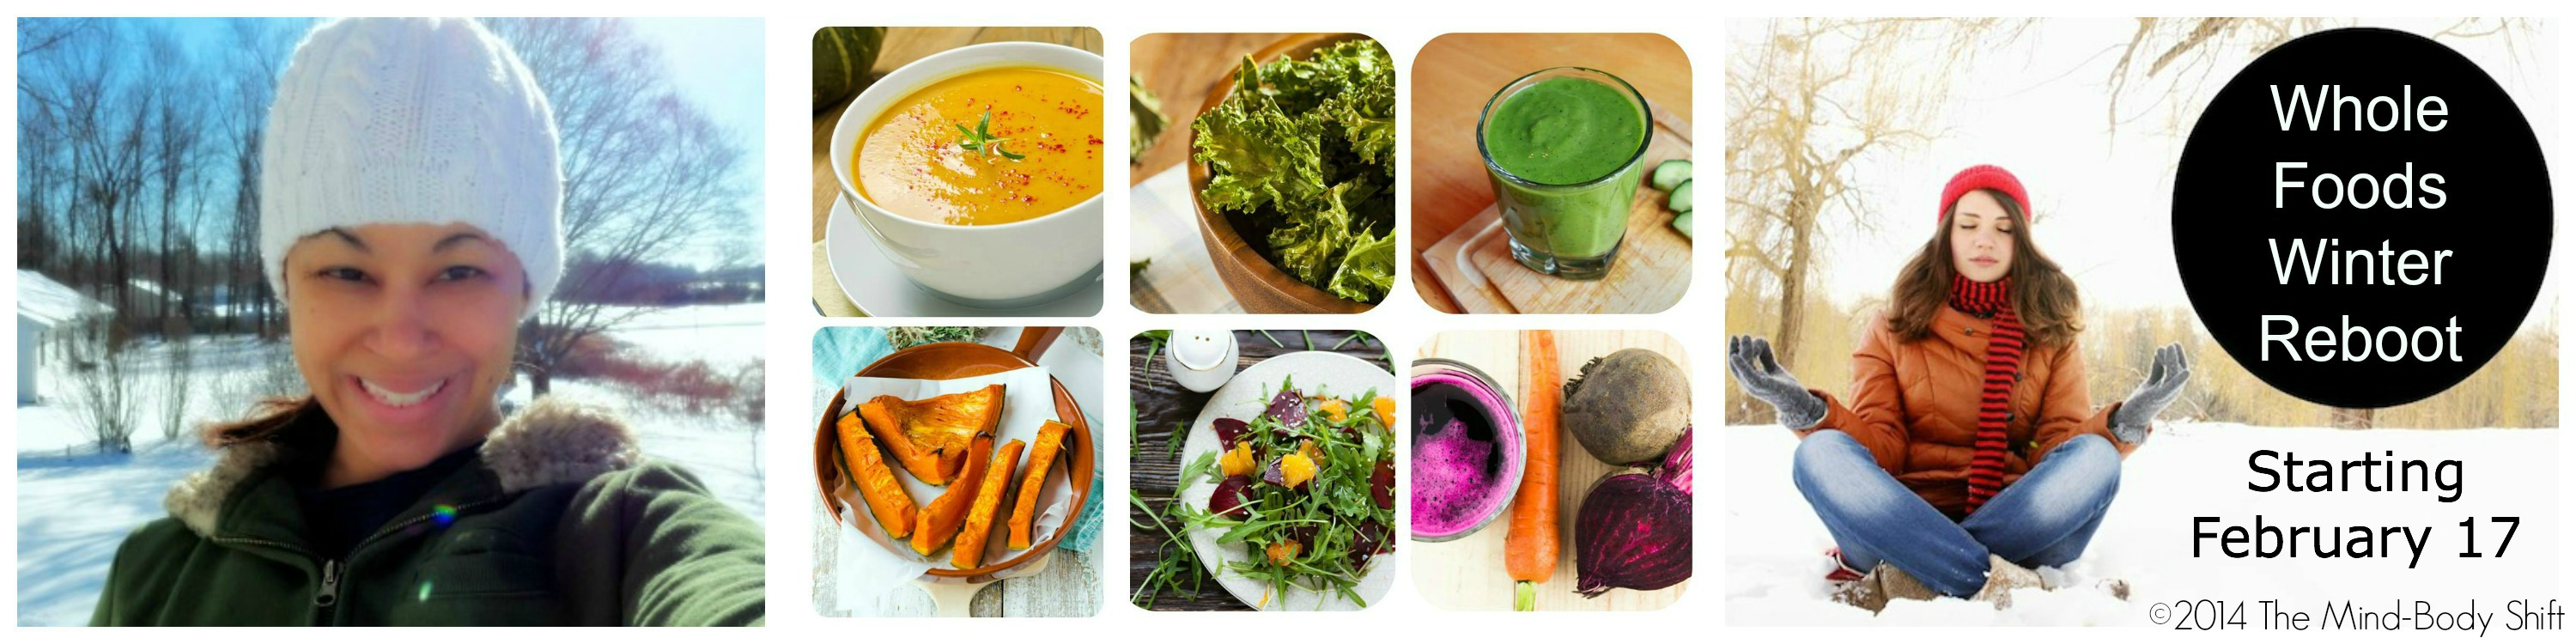 Whole Foods Winter Clean Eating Detox with The Mind-Body Shift